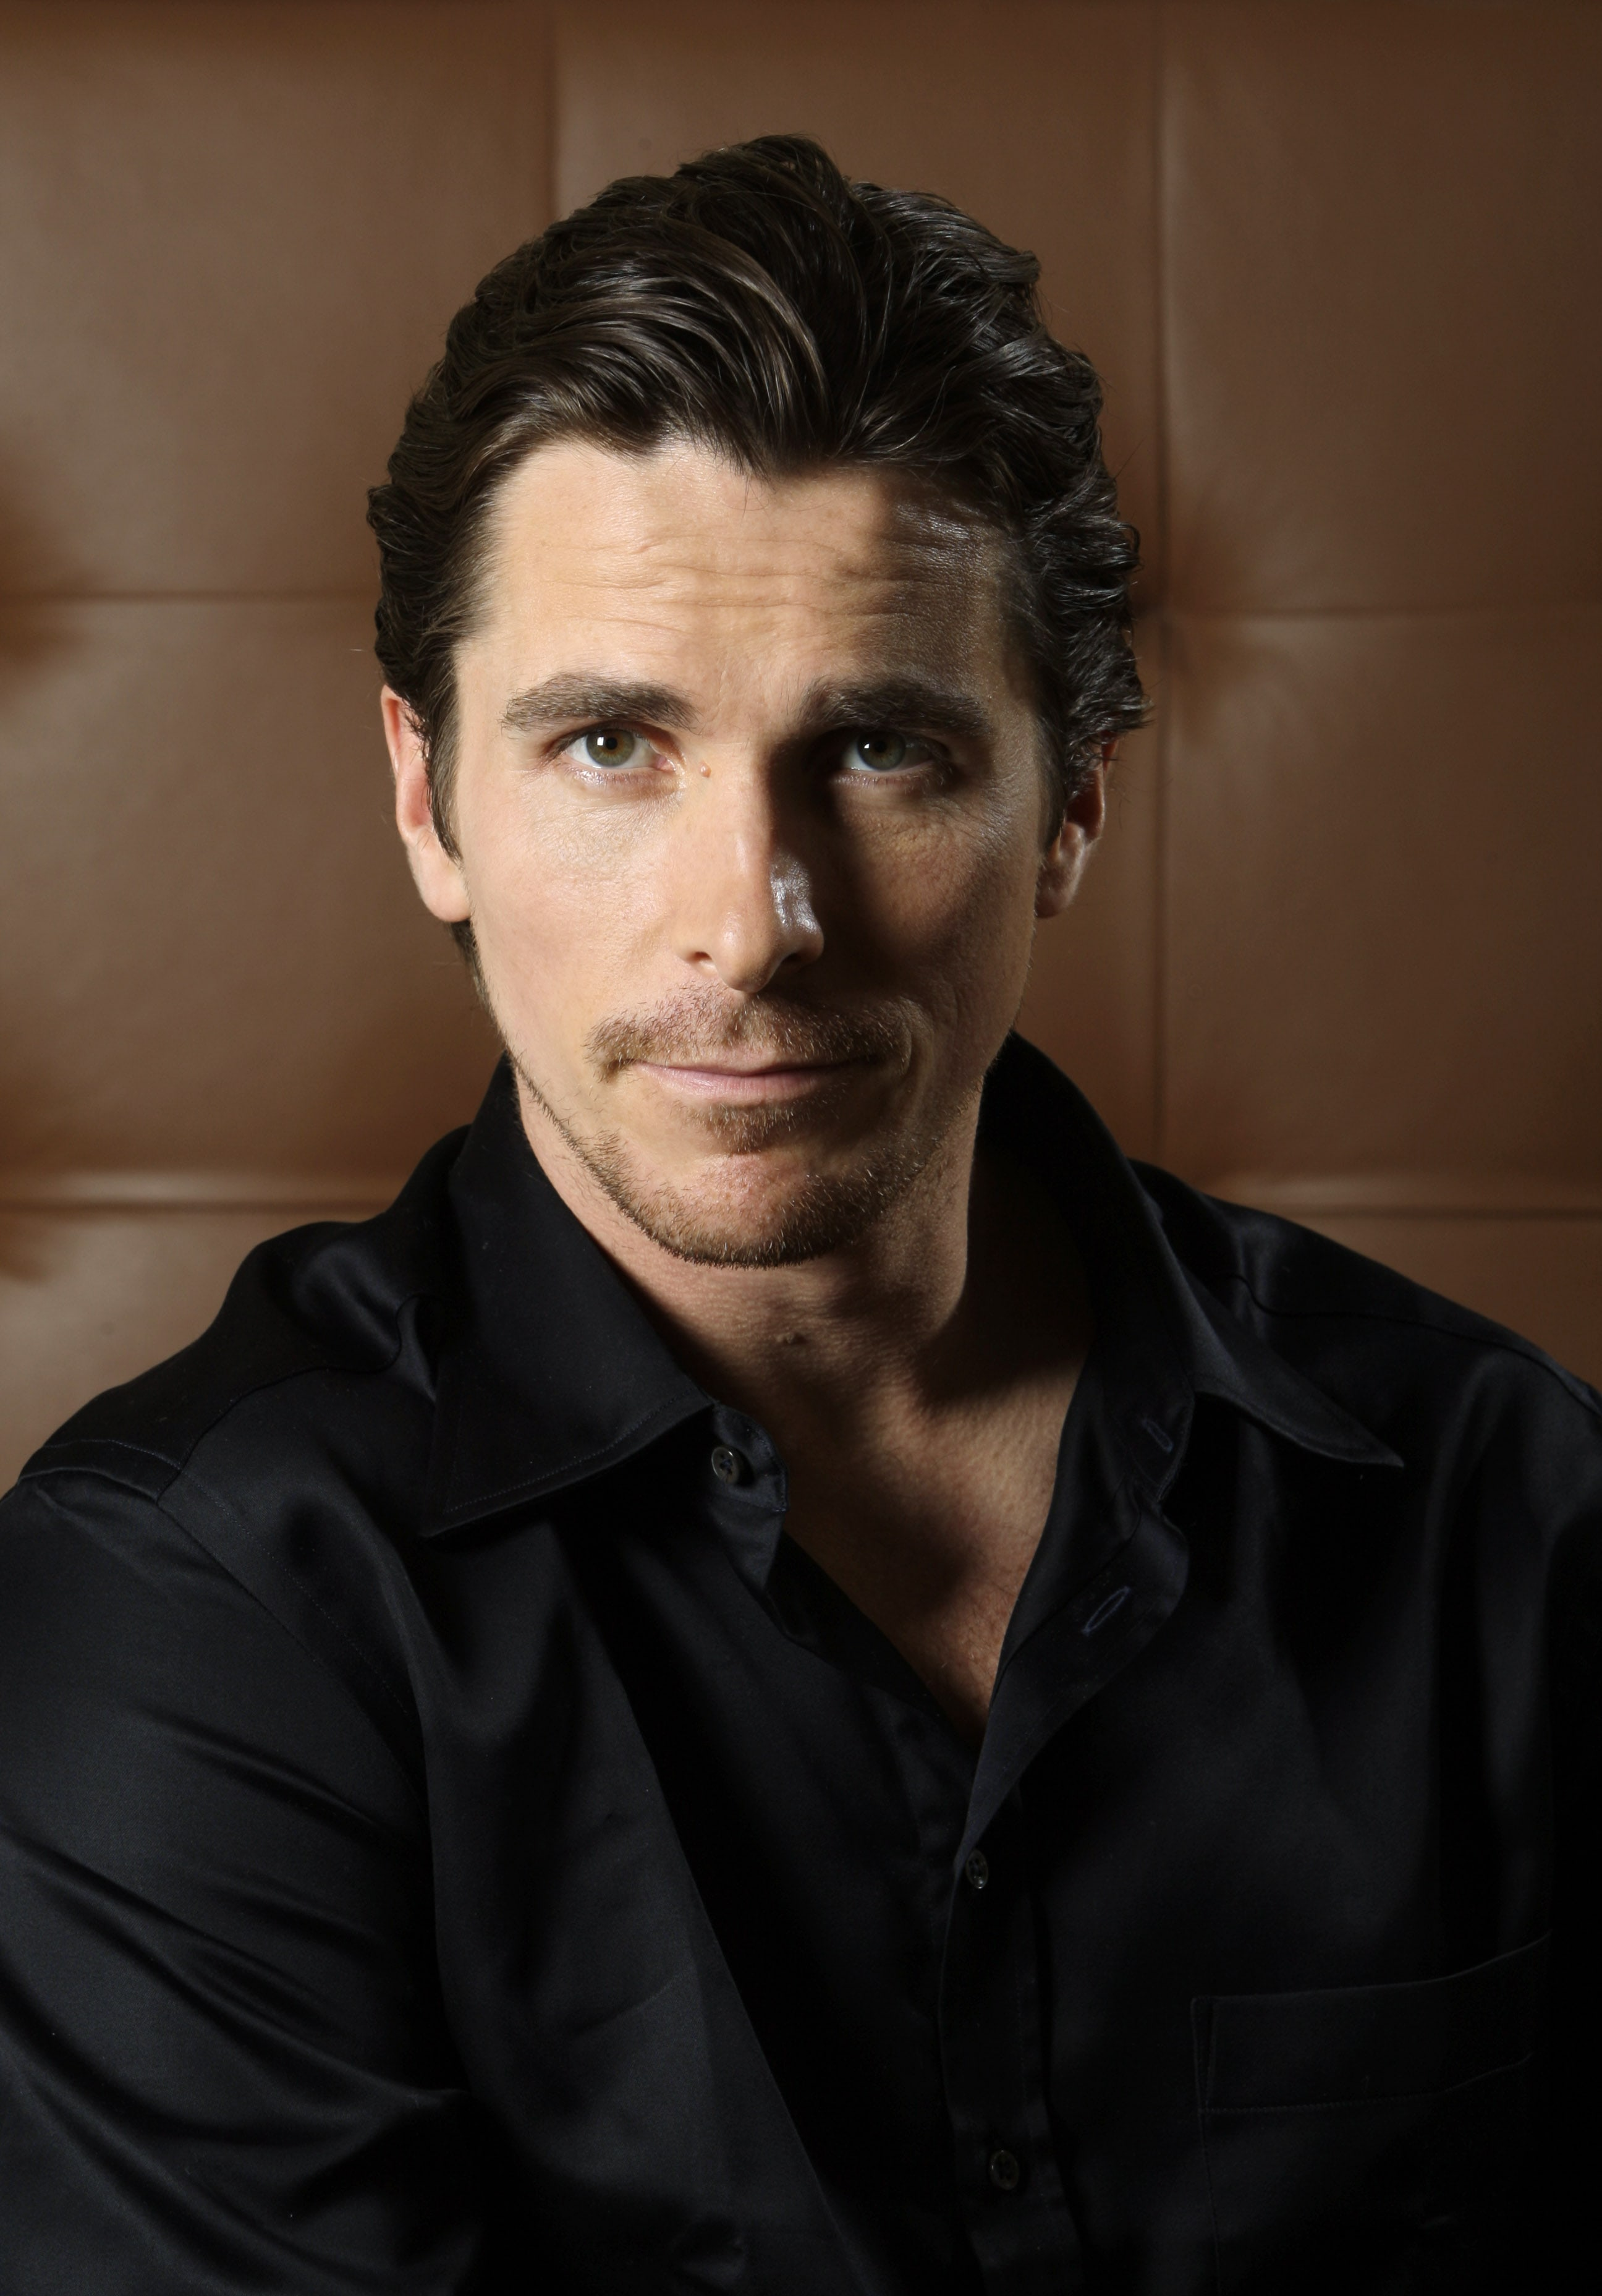 Christian Bale Backgrounds